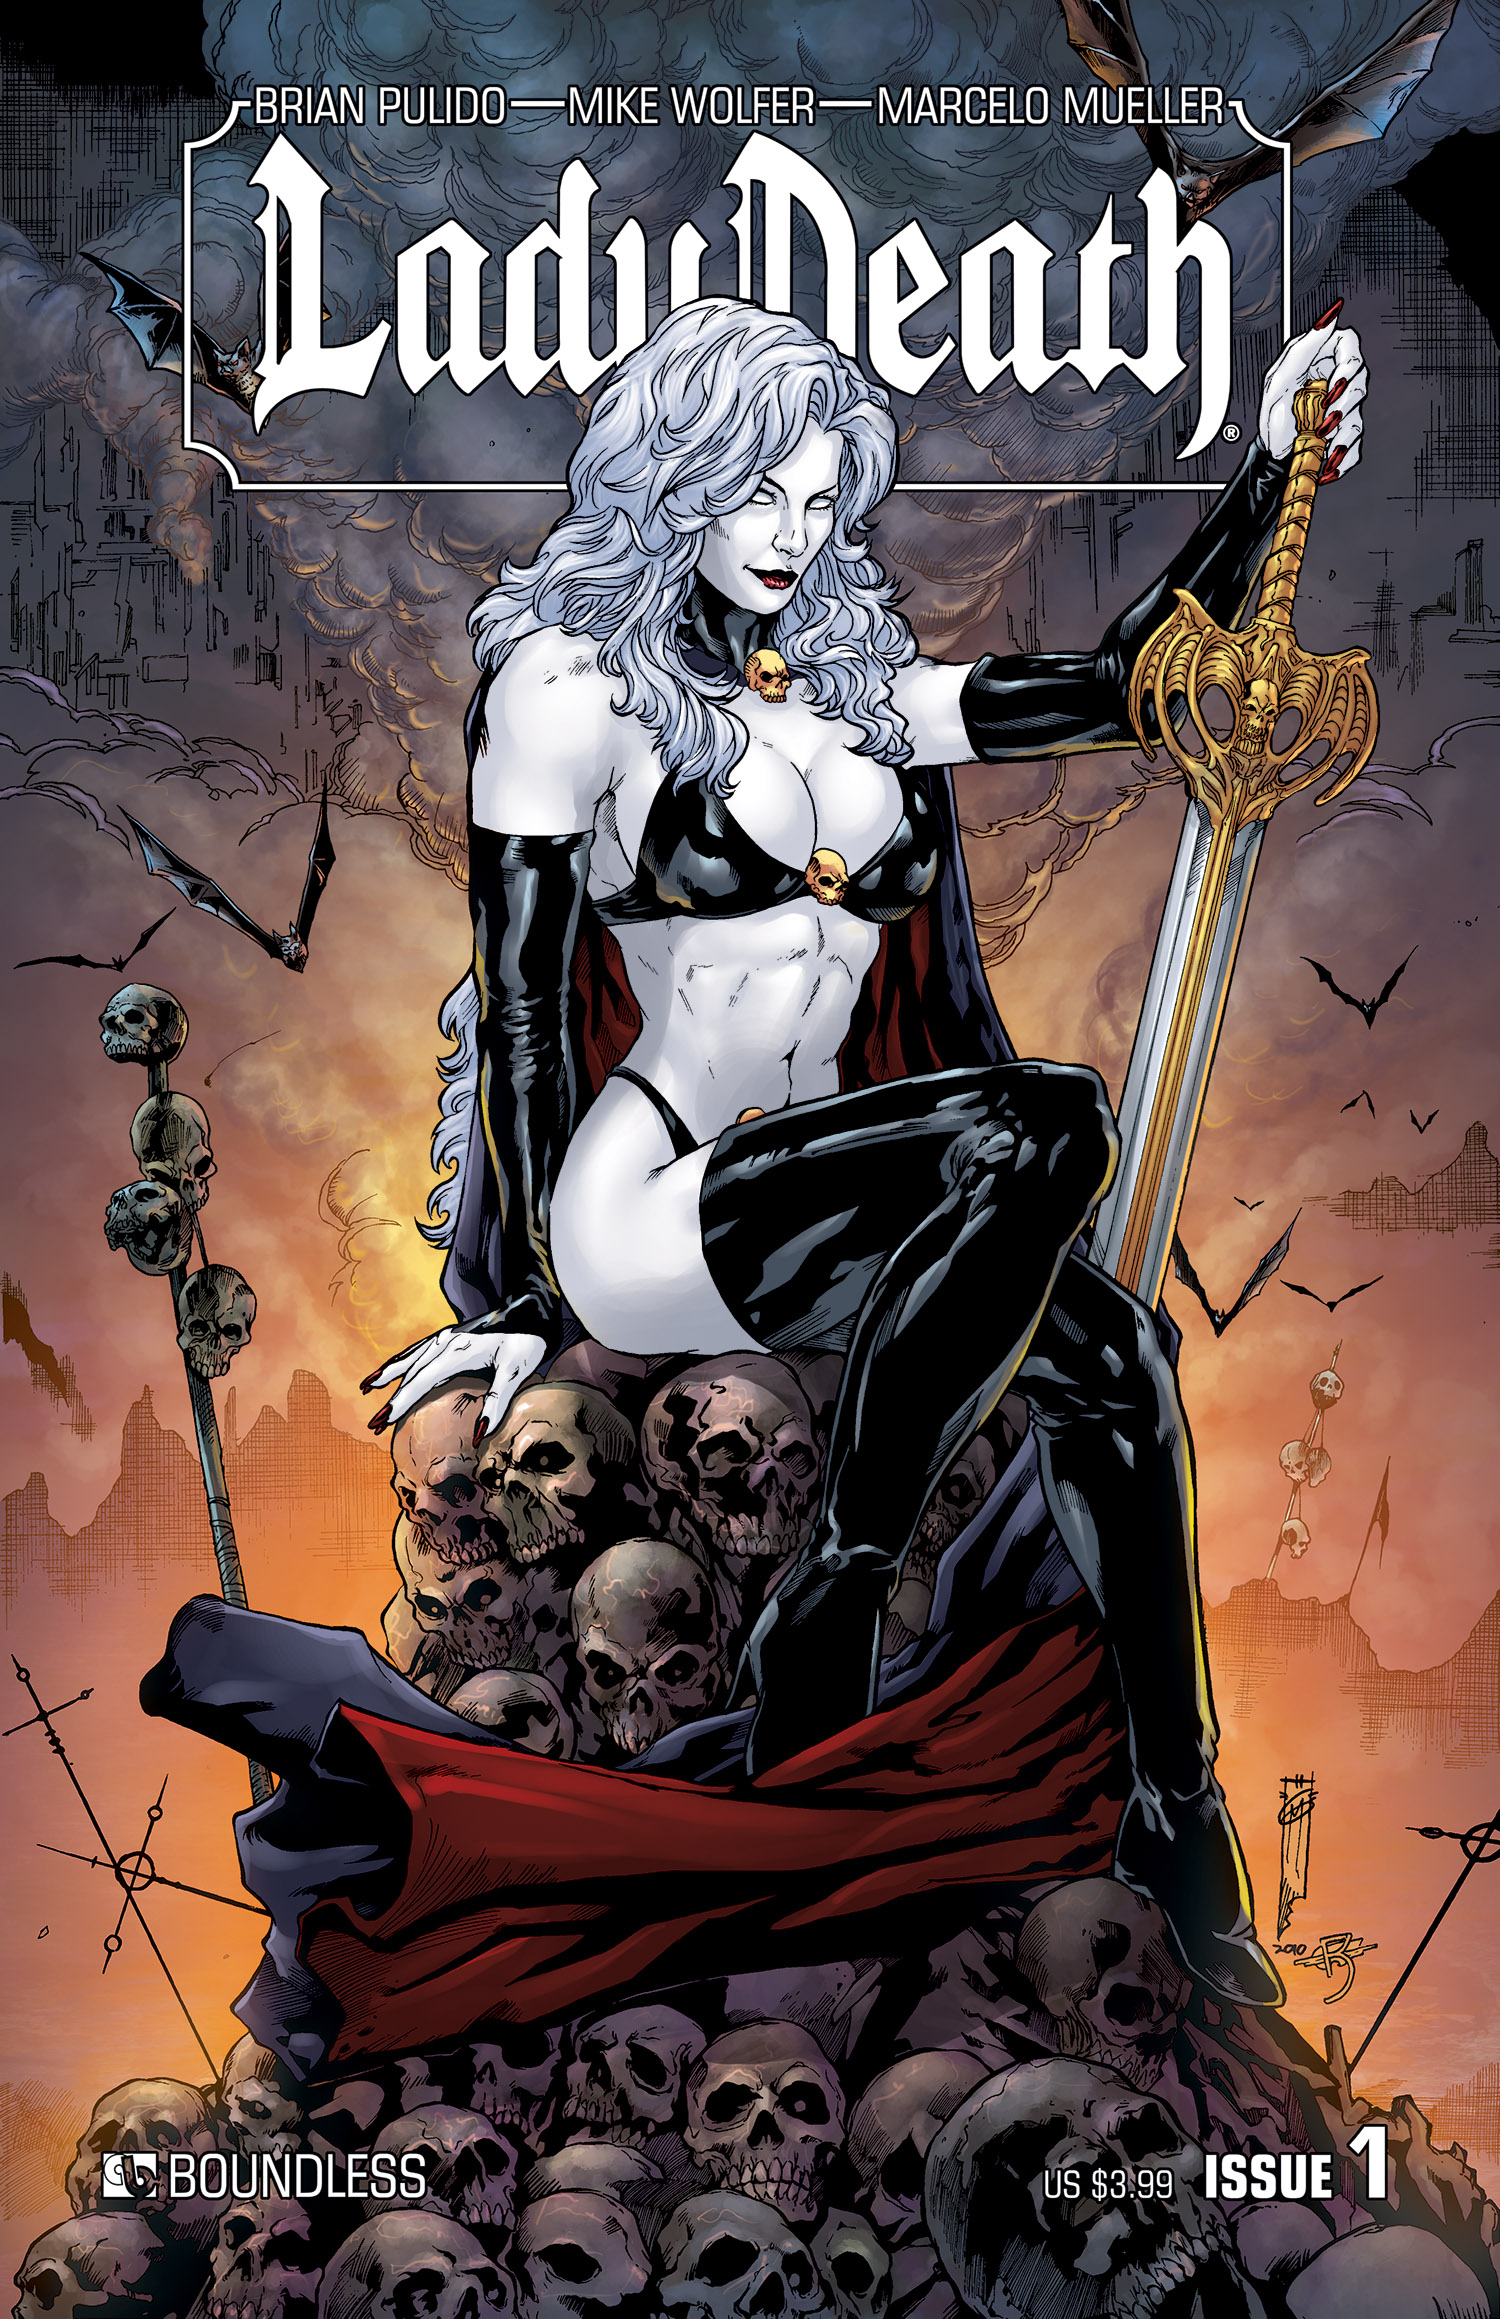 Lady death hentia image